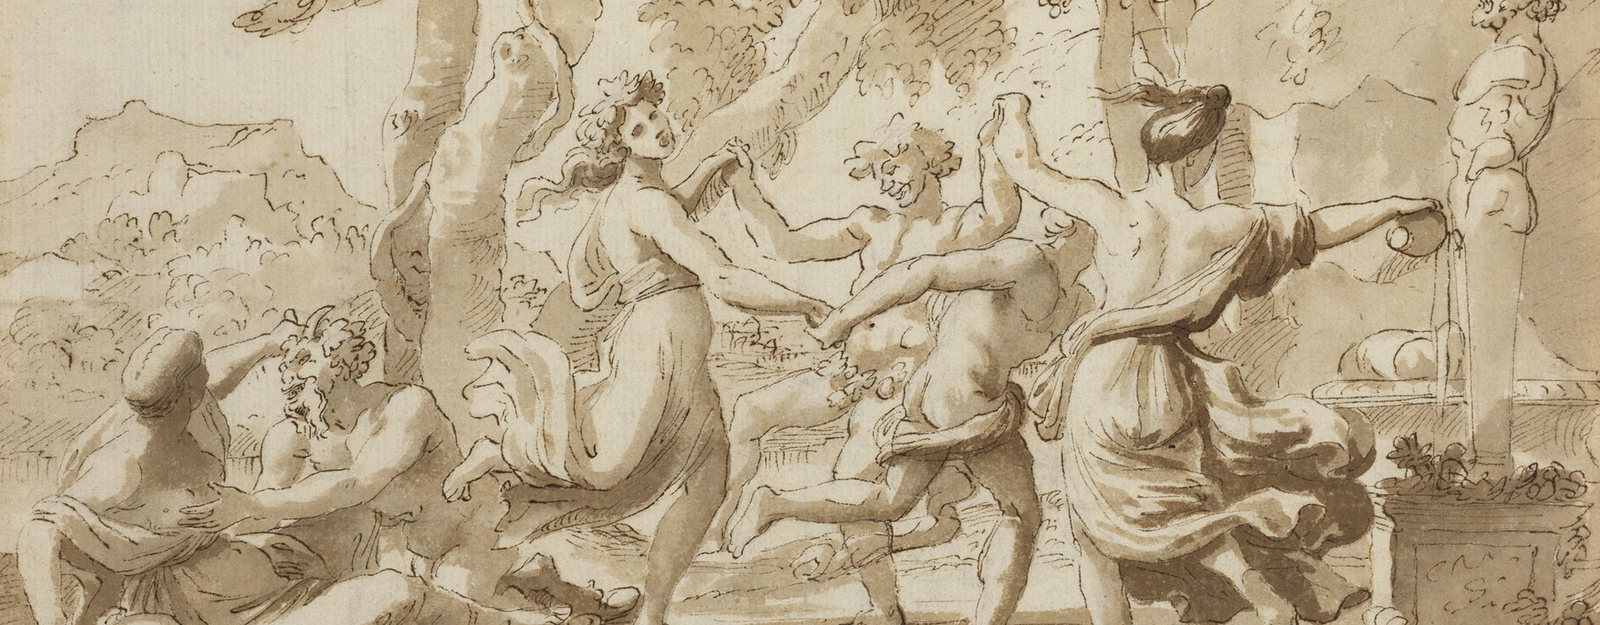 Recto: a drawing of a round dance before a herm of Pan (or Priapus), with a nymph and satyr to the left. Verso: a very weak sketch of a Holy Family group. The verso has not been catalogued. Nicolas Poussin was the outstanding French painter of the Baroque